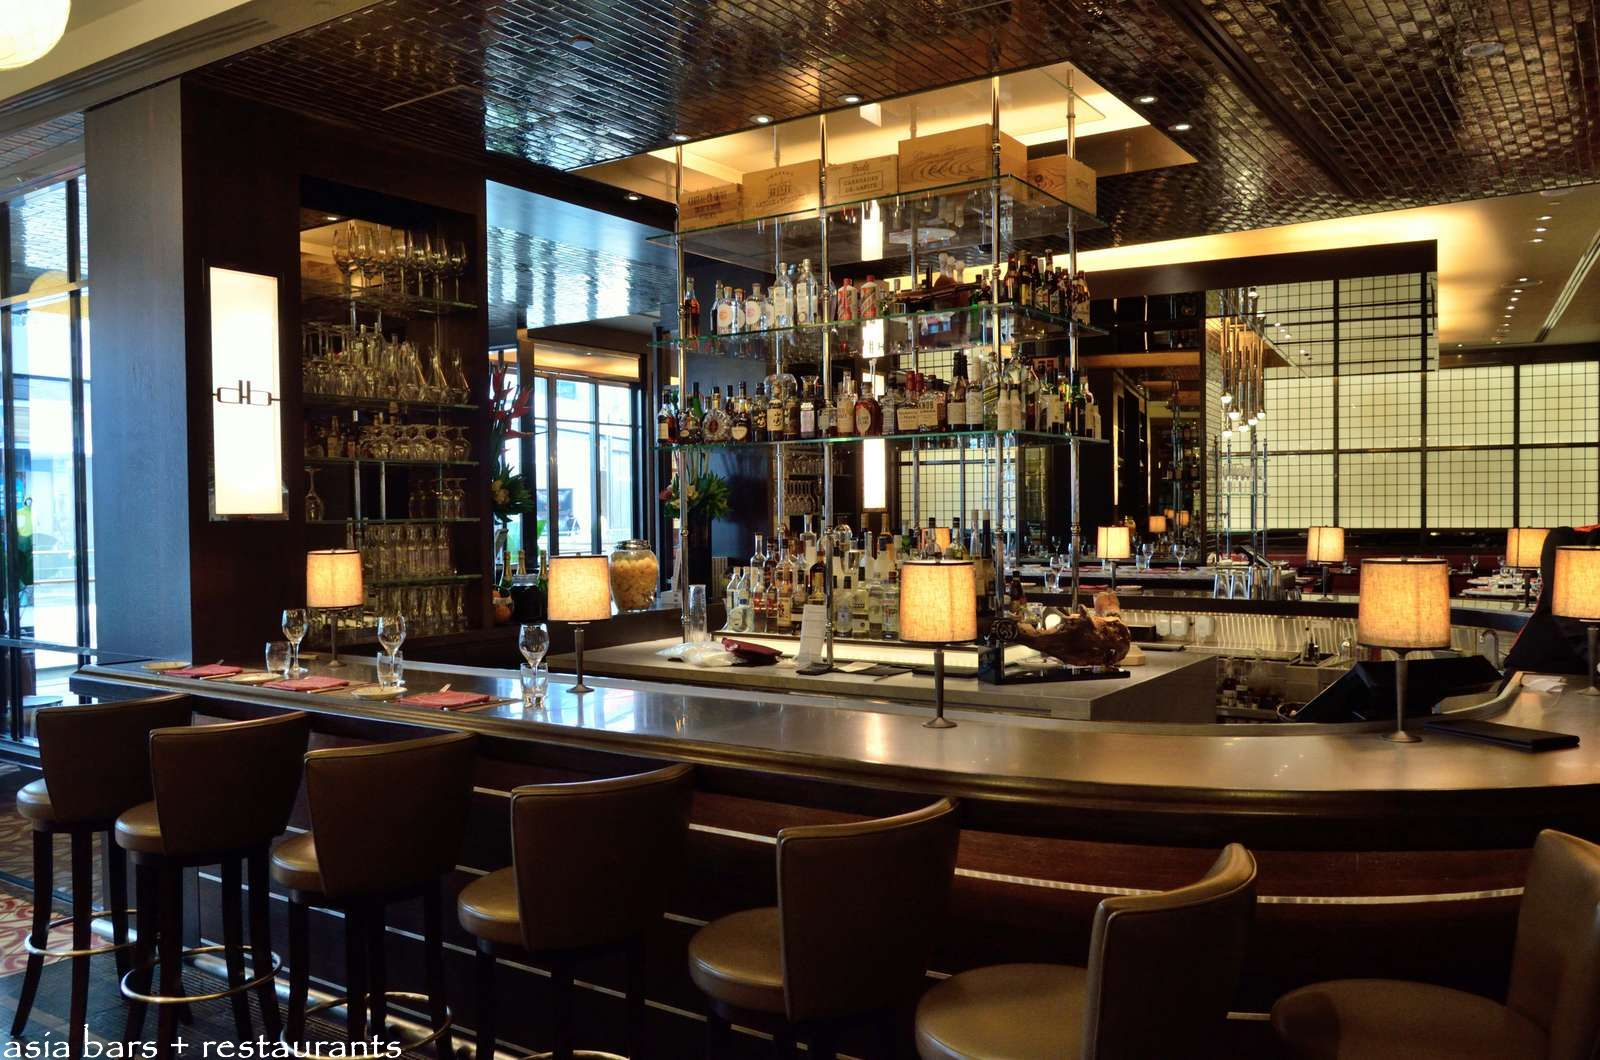 Db bistro moderne by daniel boulud at marina bay sands singapore asia bars restaurants - Moderne loungebar ...